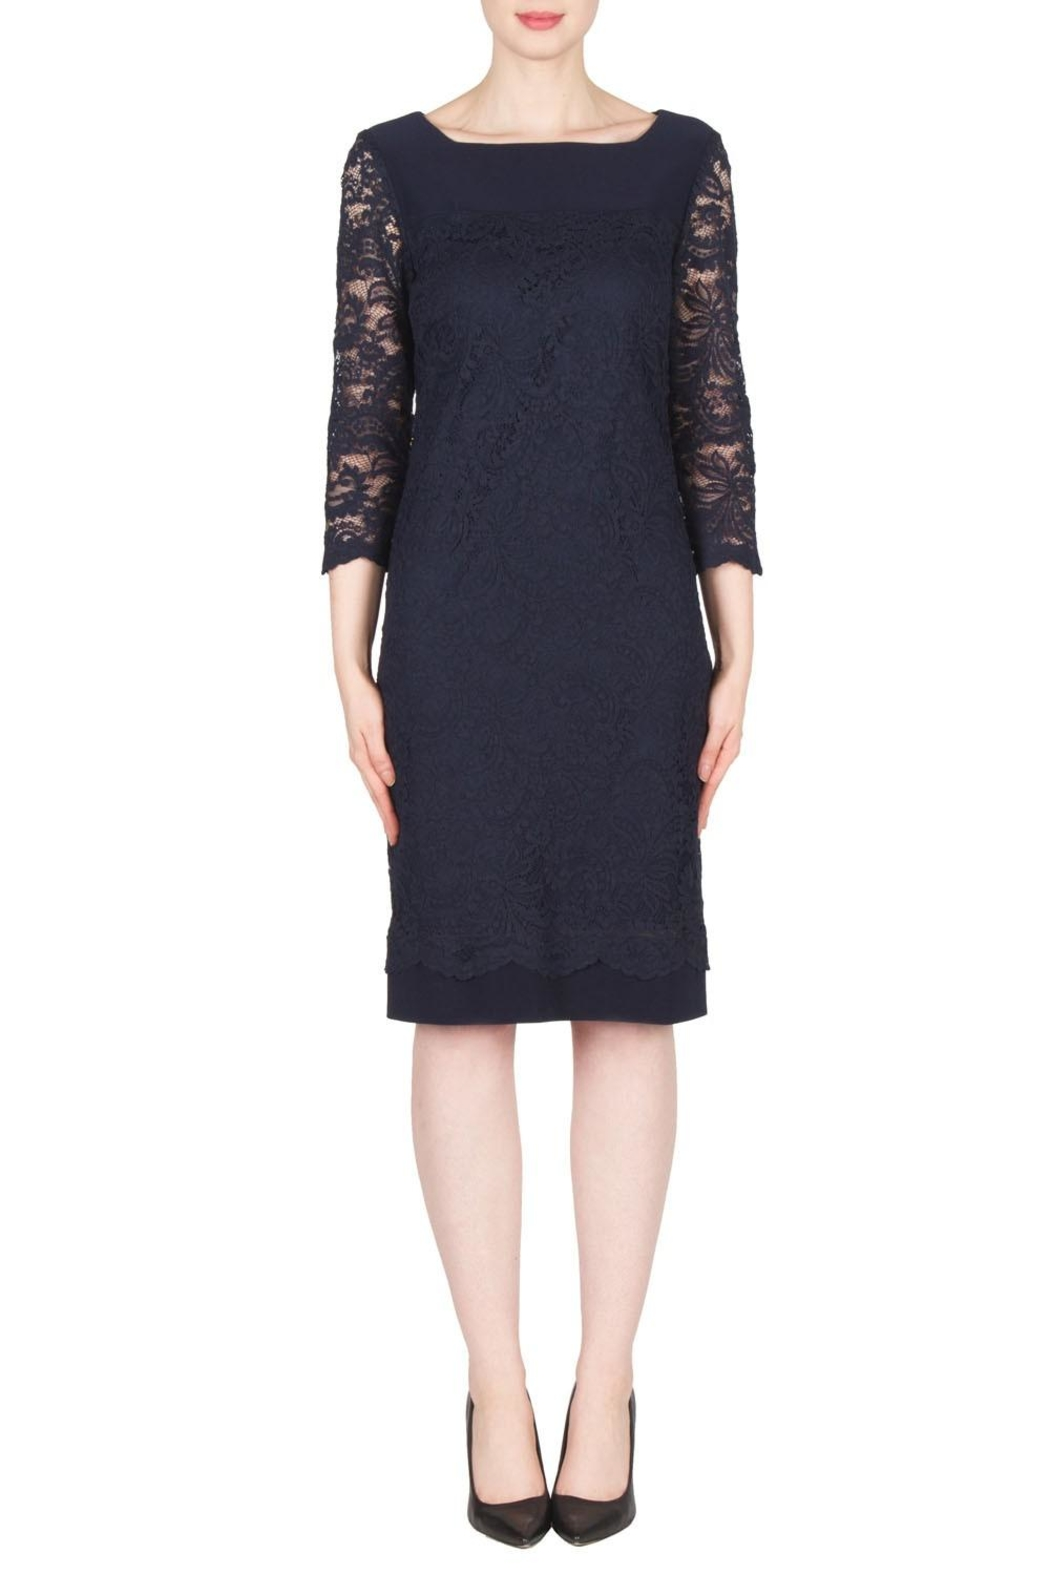 Joseph Ribkoff Navy Lace Dress from Canada by Chez Therese ...